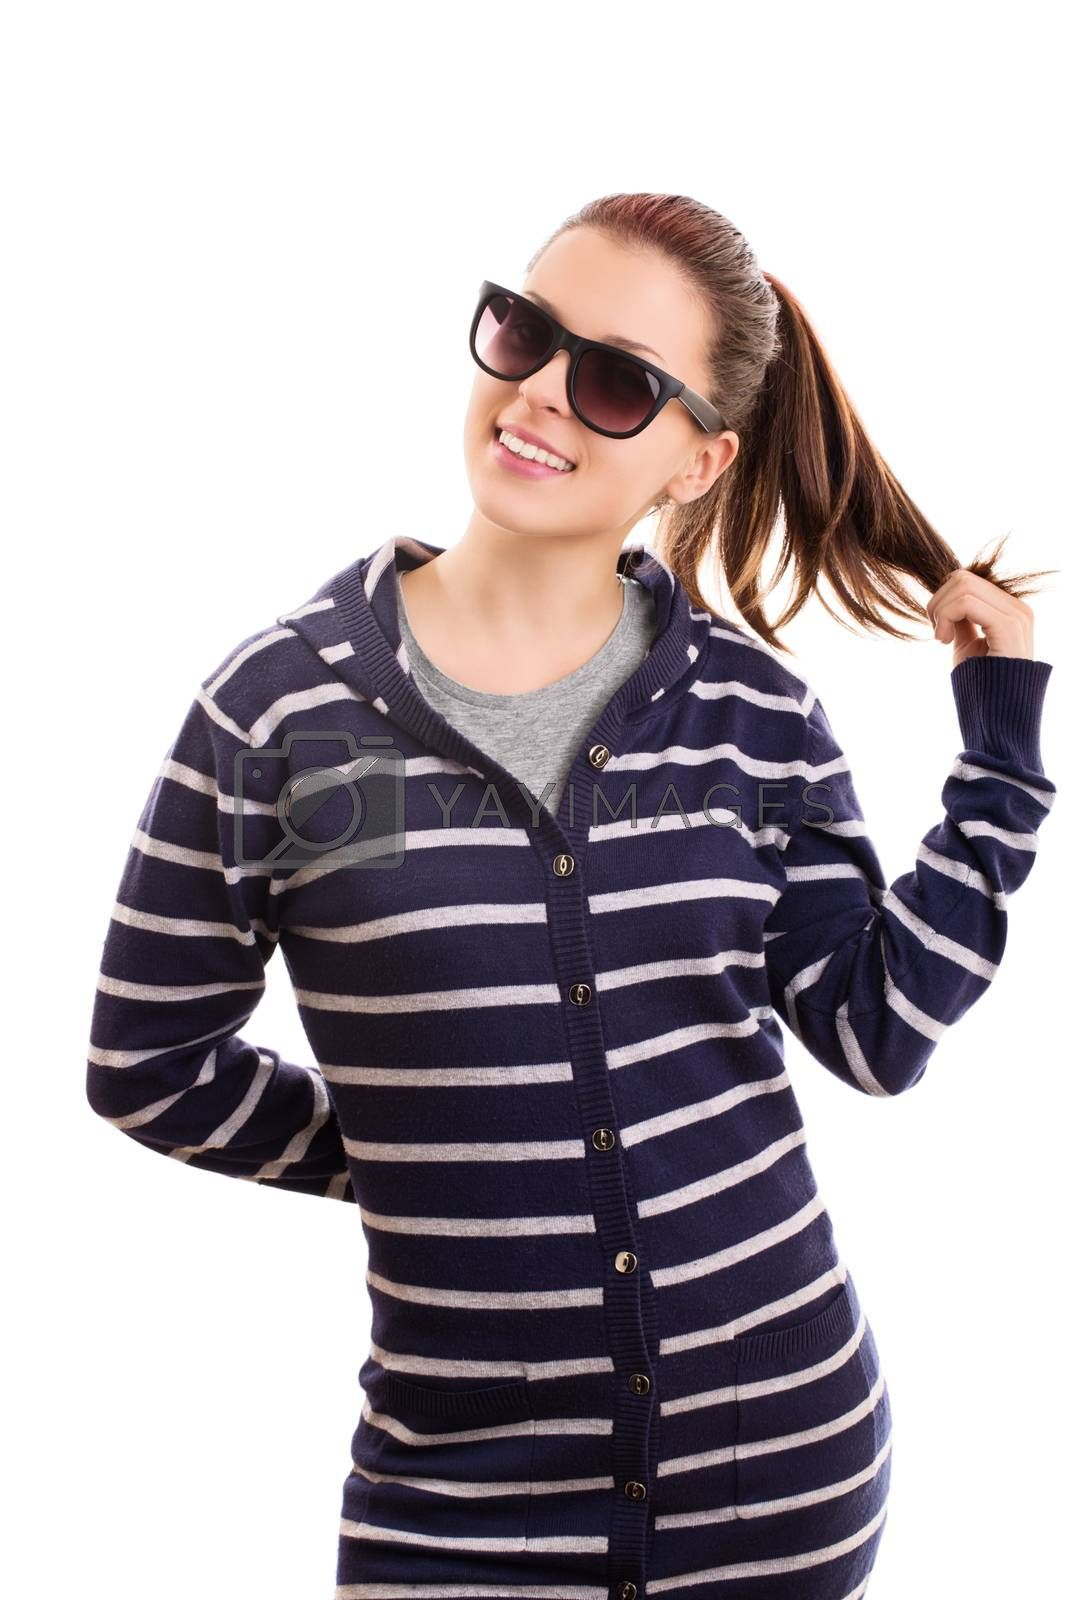 Portrait of a beautiful smiling casual girl with sunglasses playing with her hair, isolated on white background.